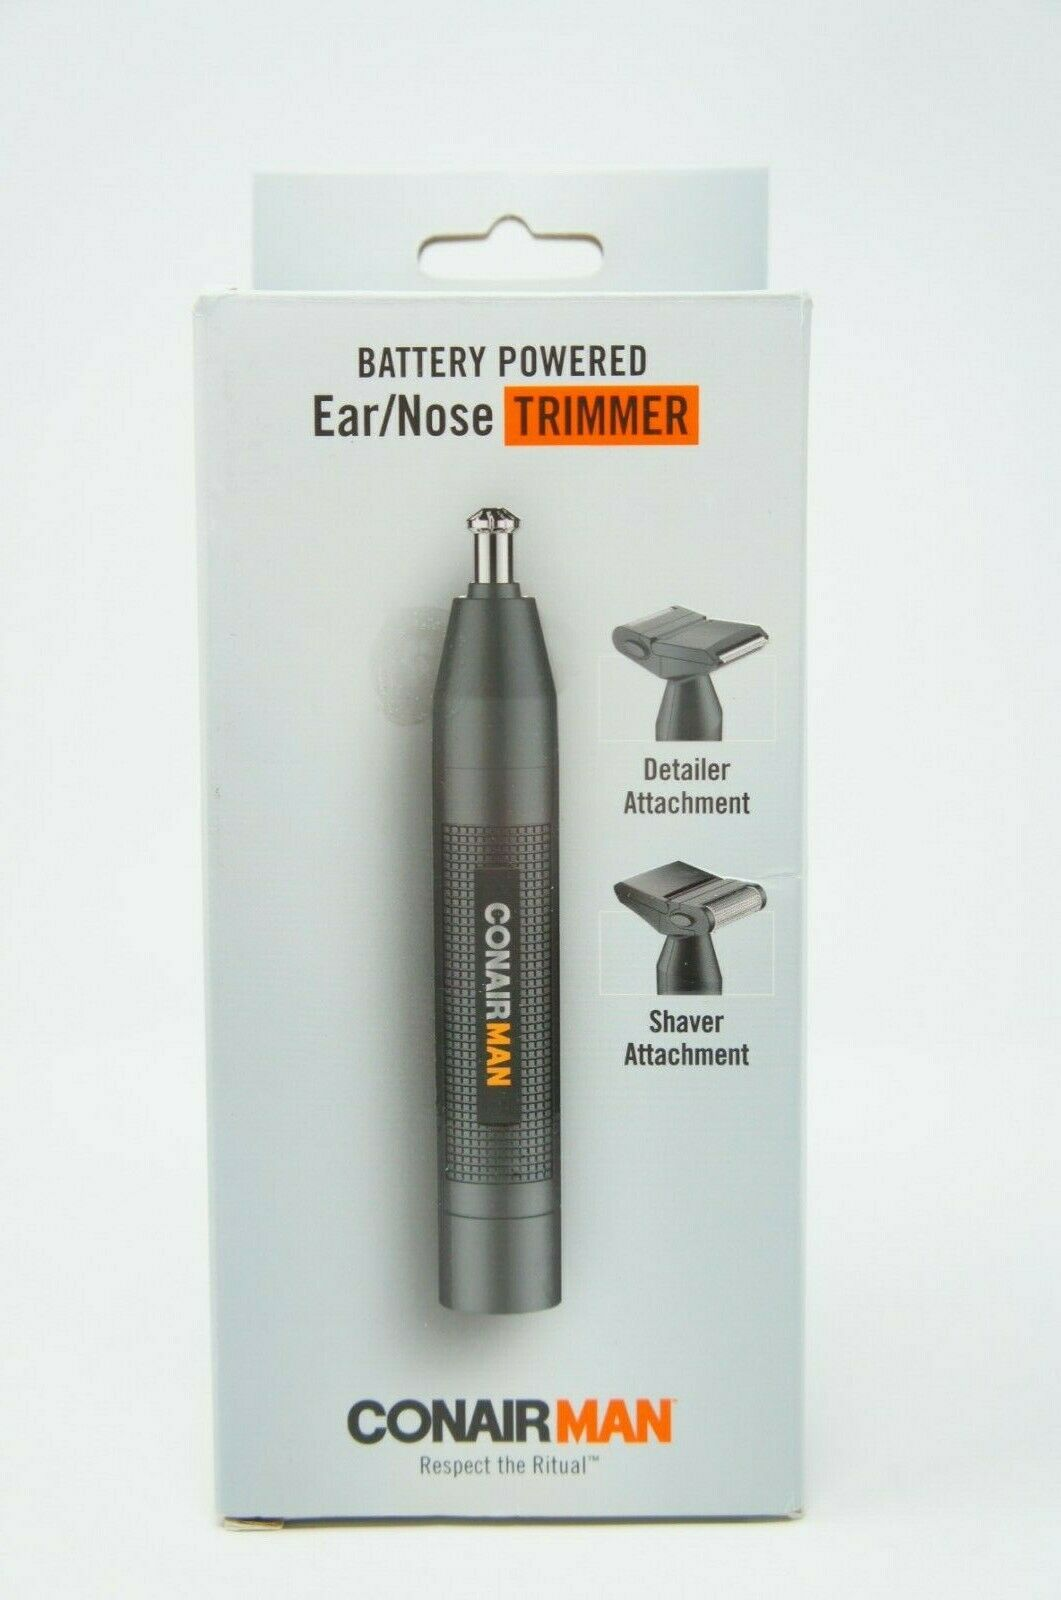 ConairMAN PG1000 Battery-Powered Ear/Nose Trimmer